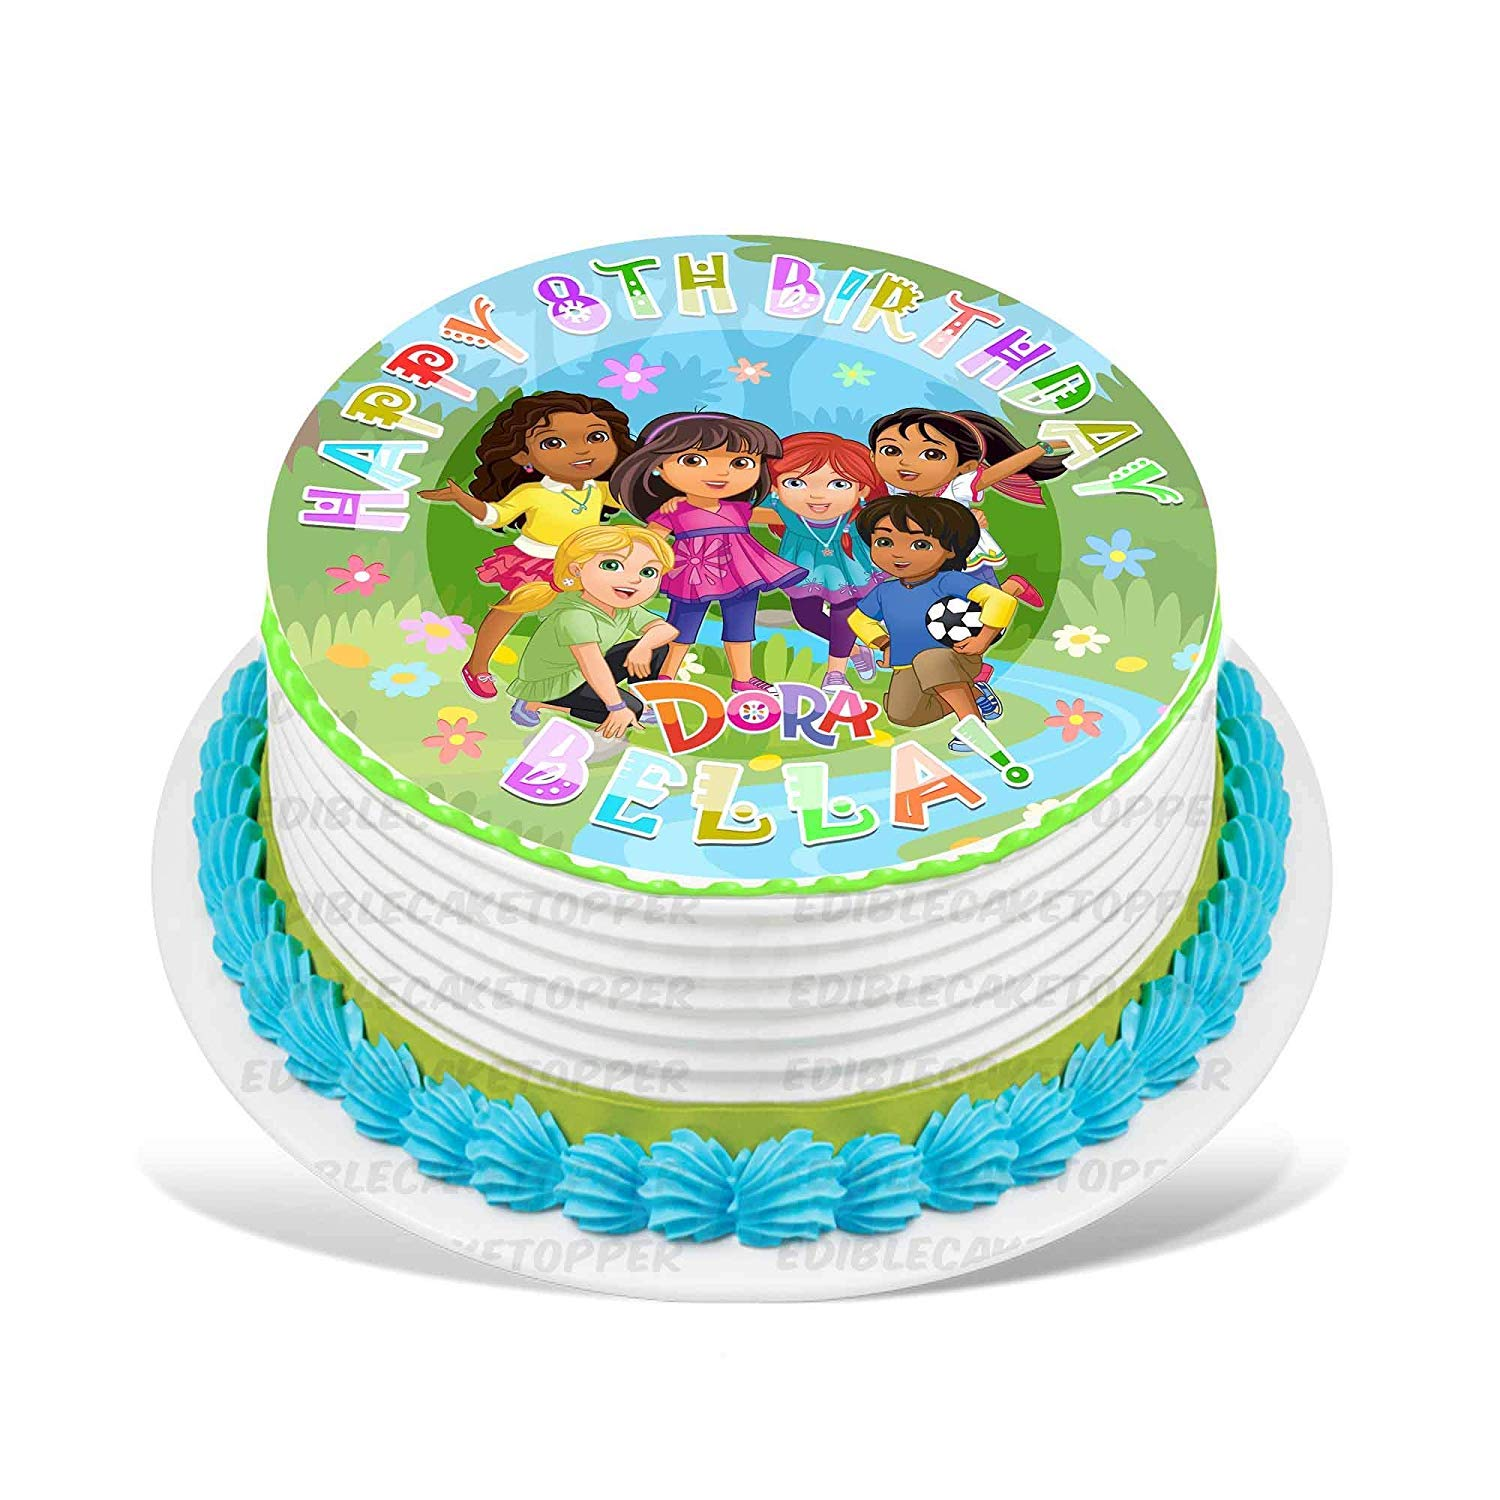 Dora And Friends Edible Cake Topper Personalized Birthday 10 Round